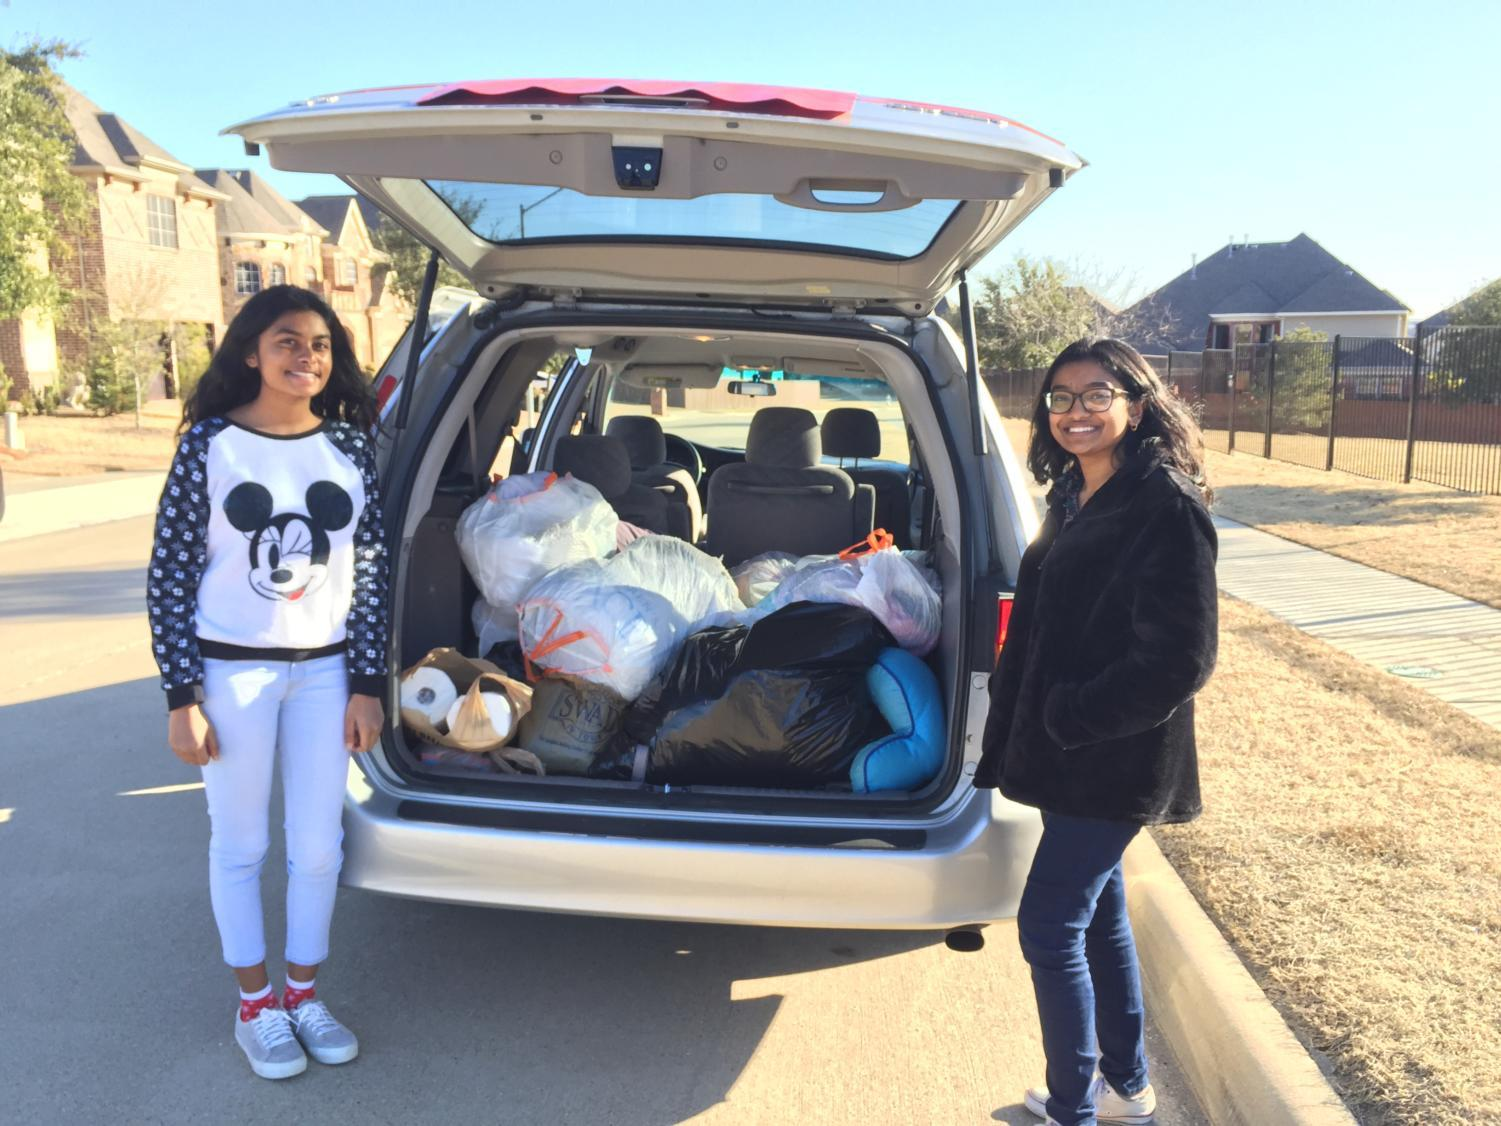 Sophomores Pooja Cheruku and Laasya Madana collect the donations they received through their drive held on Jan. 13. All donations, including clothes and toiletries will be donated to the Salvation Army in order to raise awareness for the issue of homelessness.